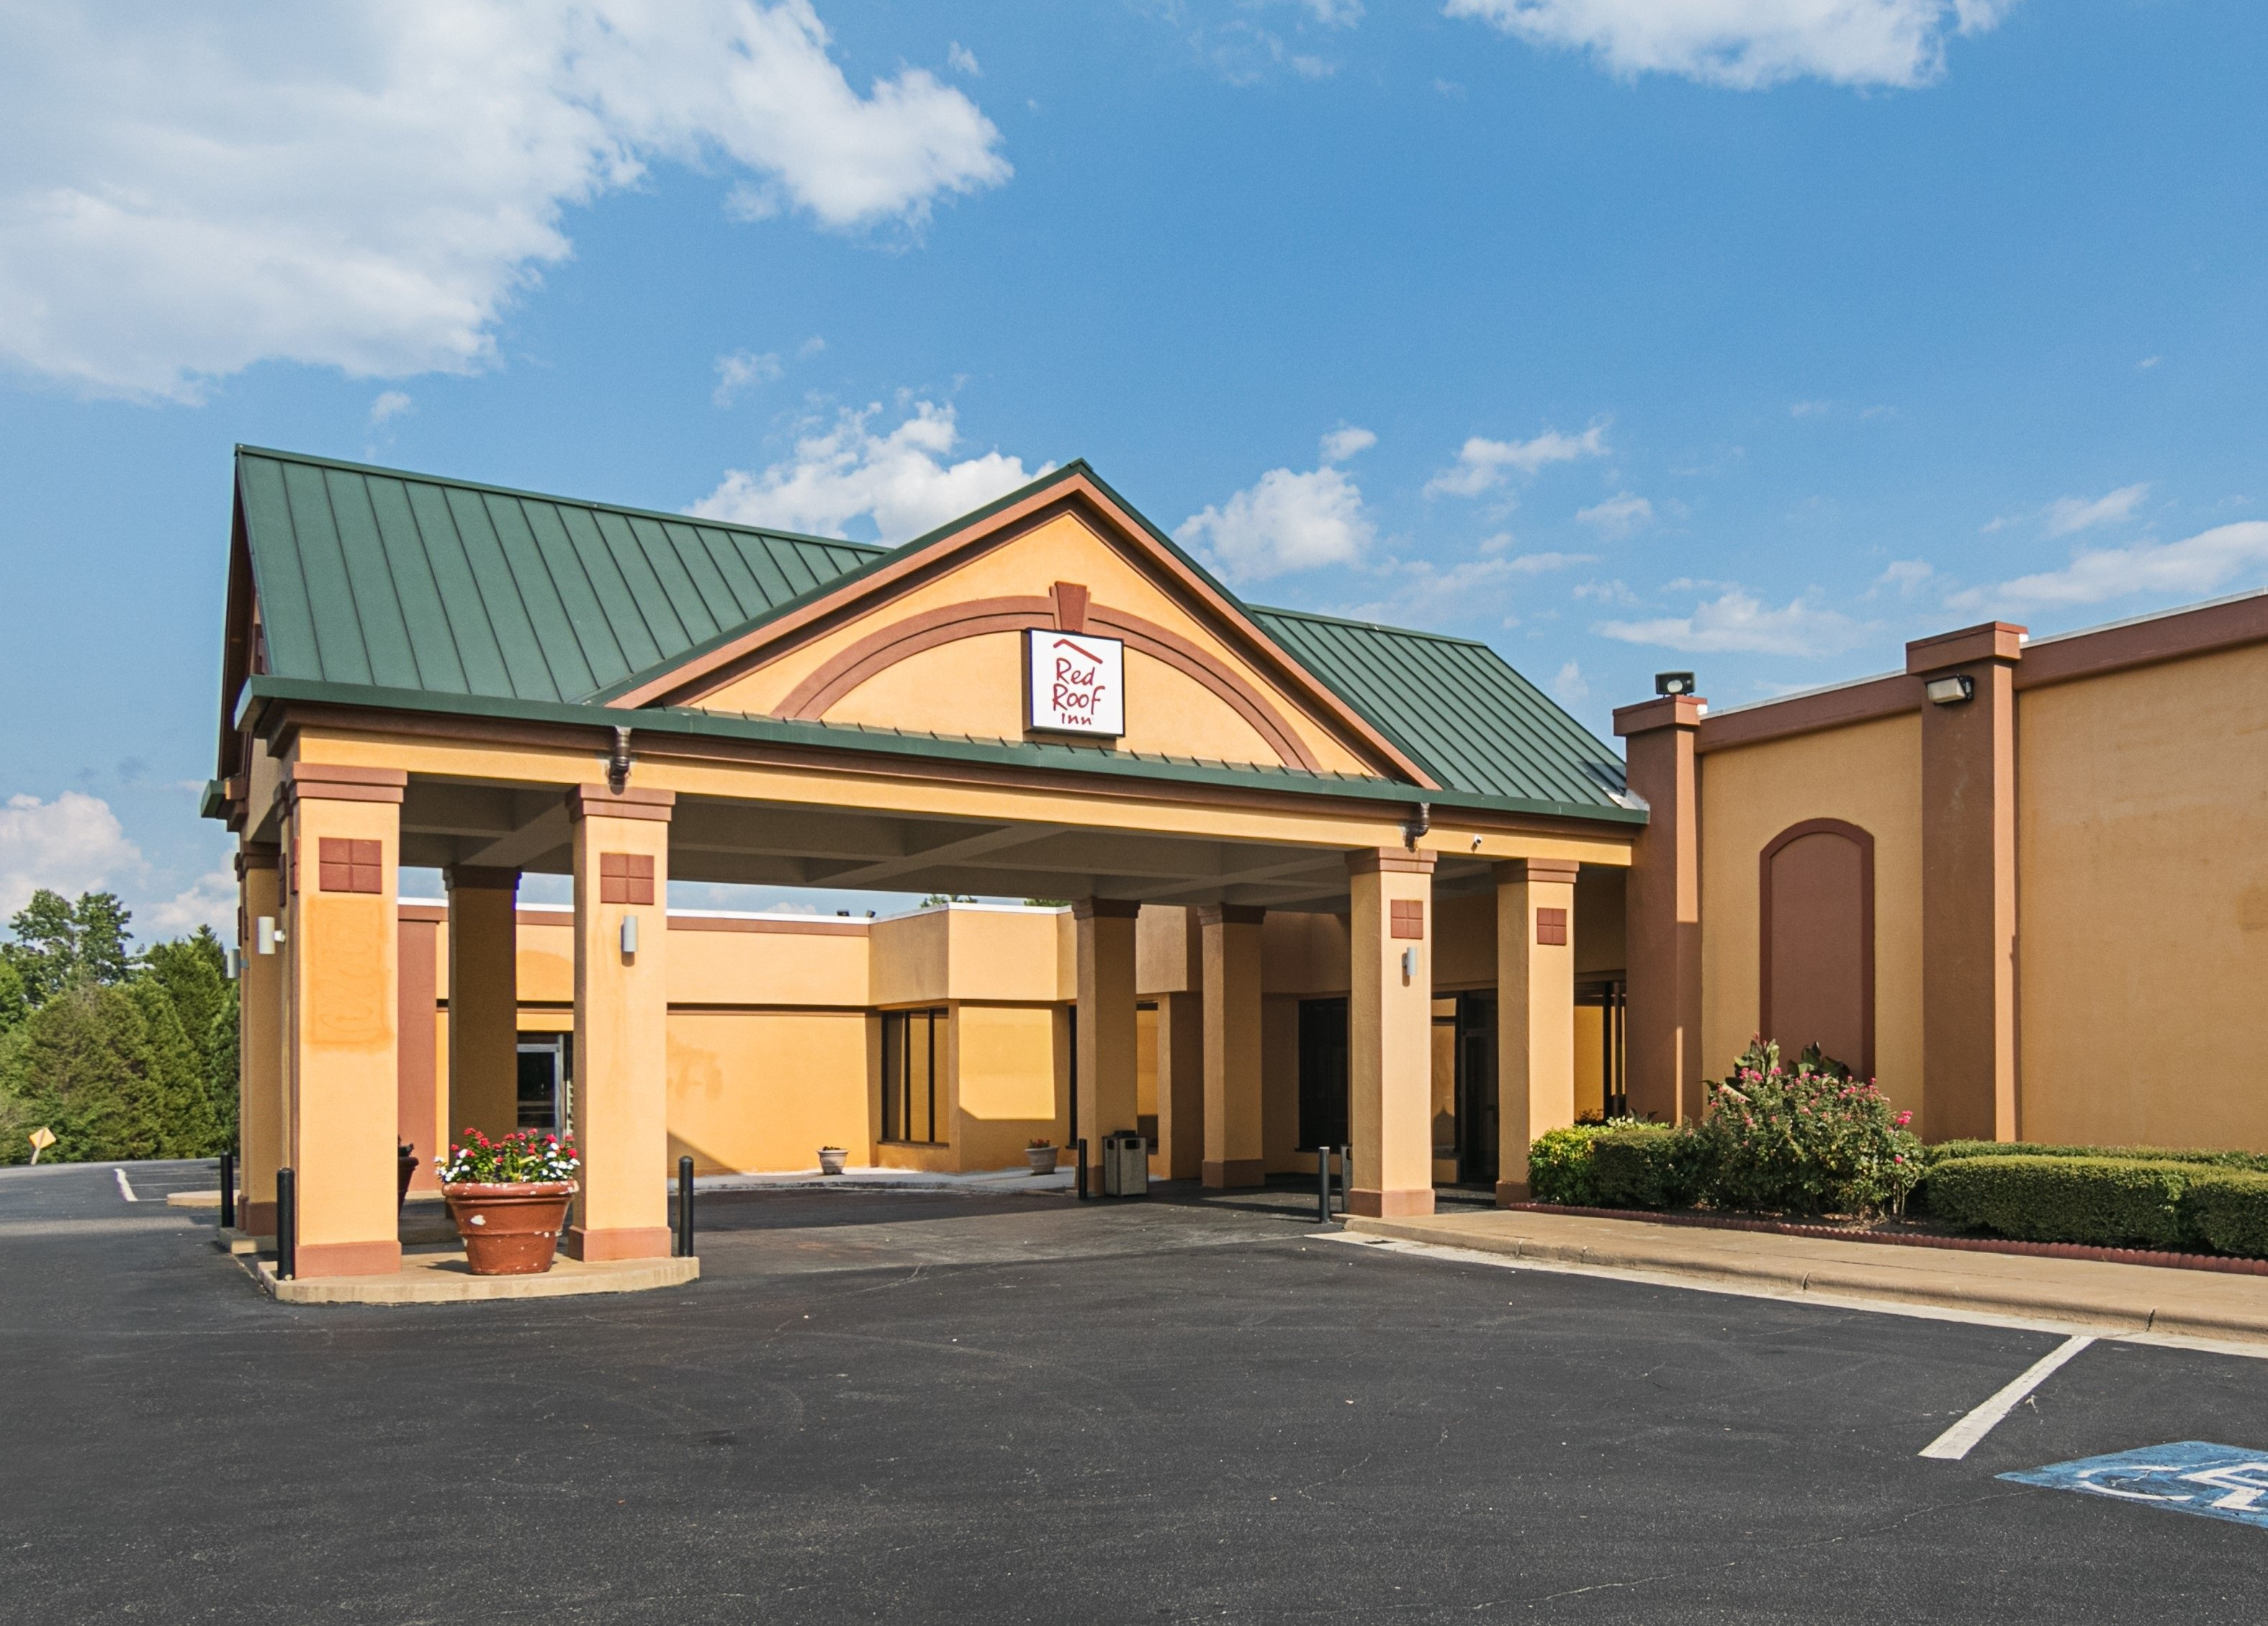 Red Roof Inn Forsyth